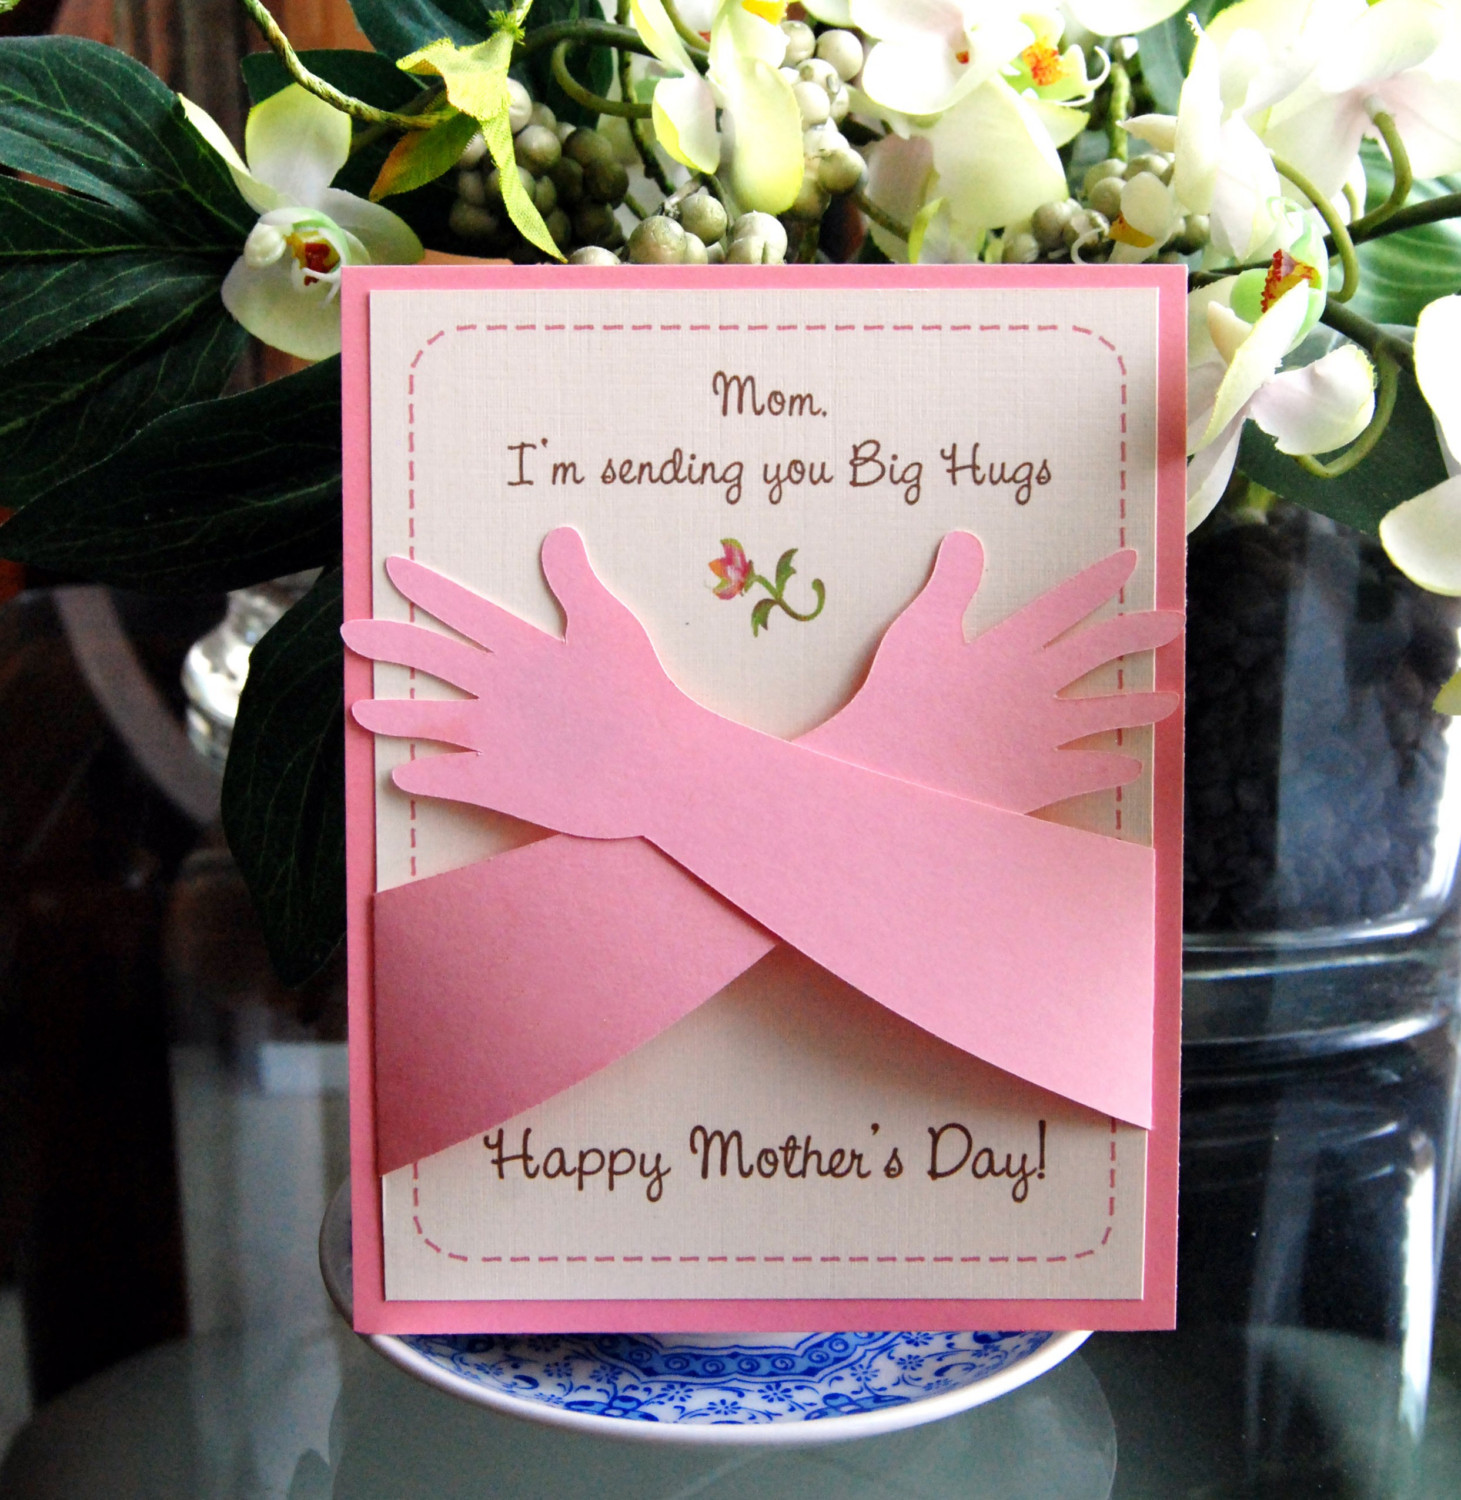 Homemade Birthday Gifts For Mom From Daughter Luxury 45 Beautiful